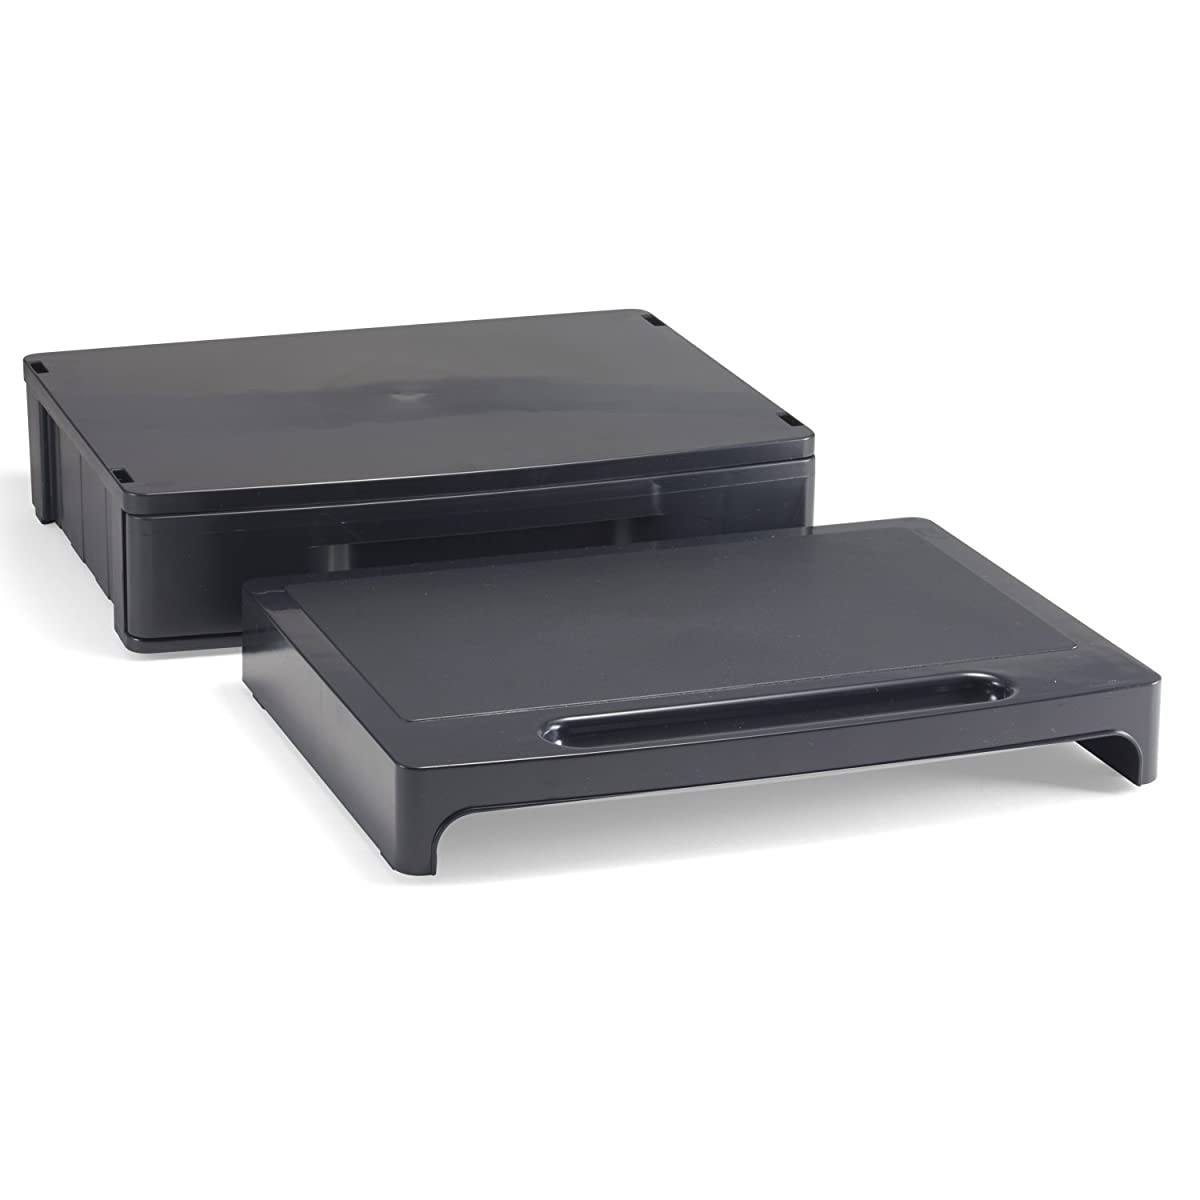 Officemate 2200 Series Executive Monitor Stand with Drawer, Black (22502)